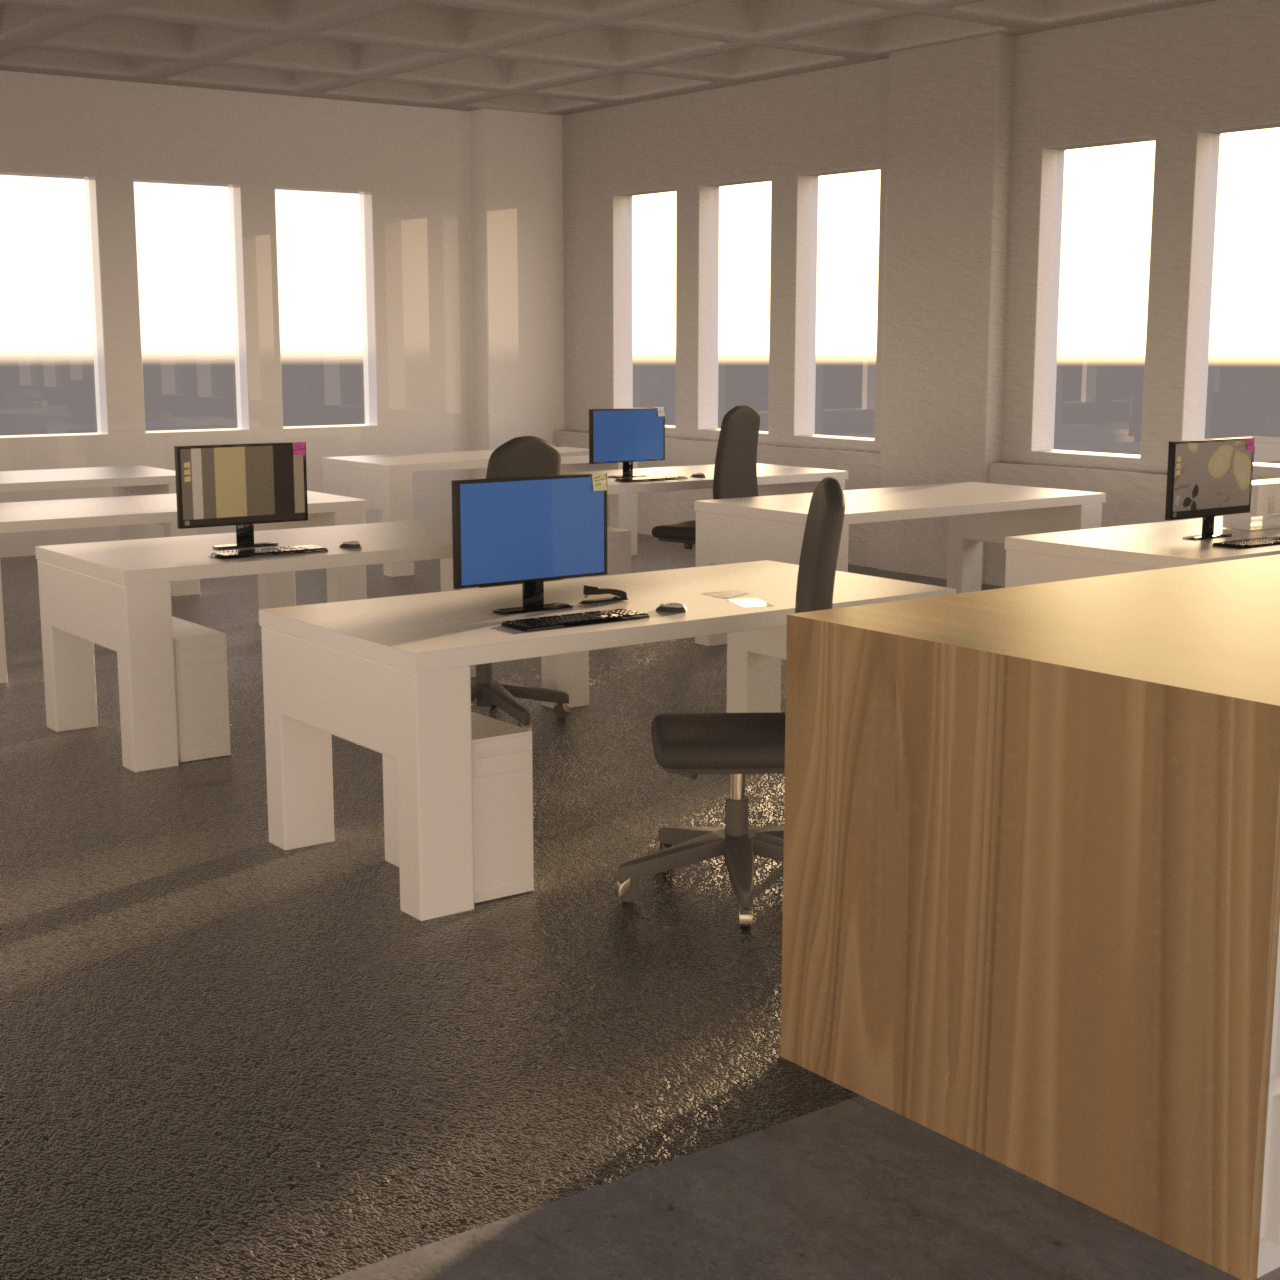 An overview of the whole office